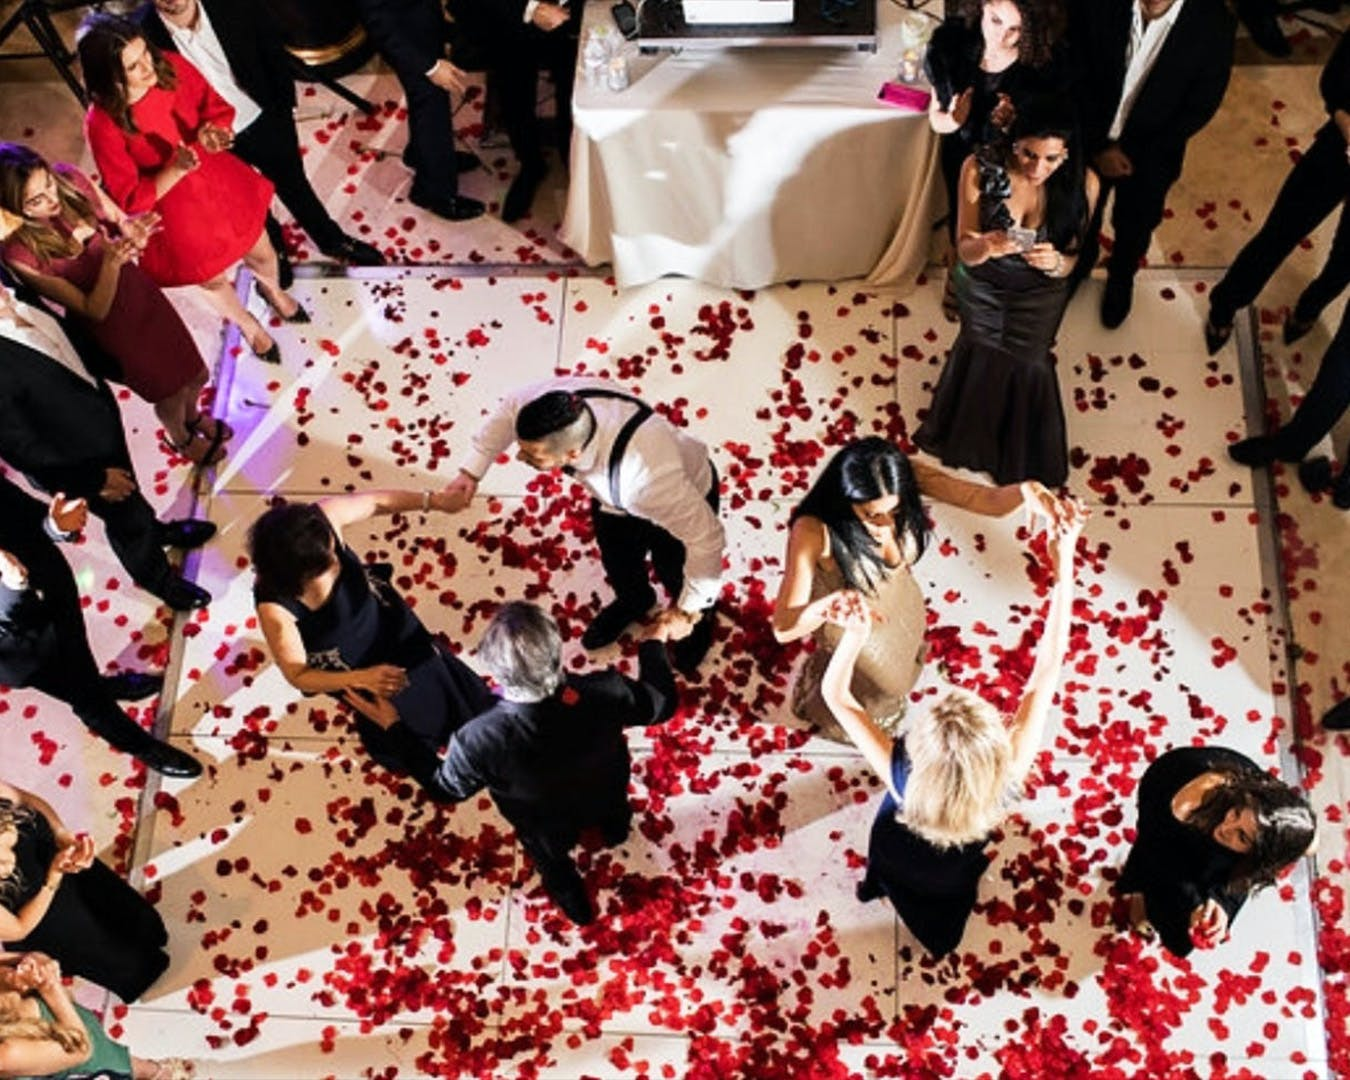 Guests dance on a white dance floor covered in red rose petals at engagement party | PartySlate